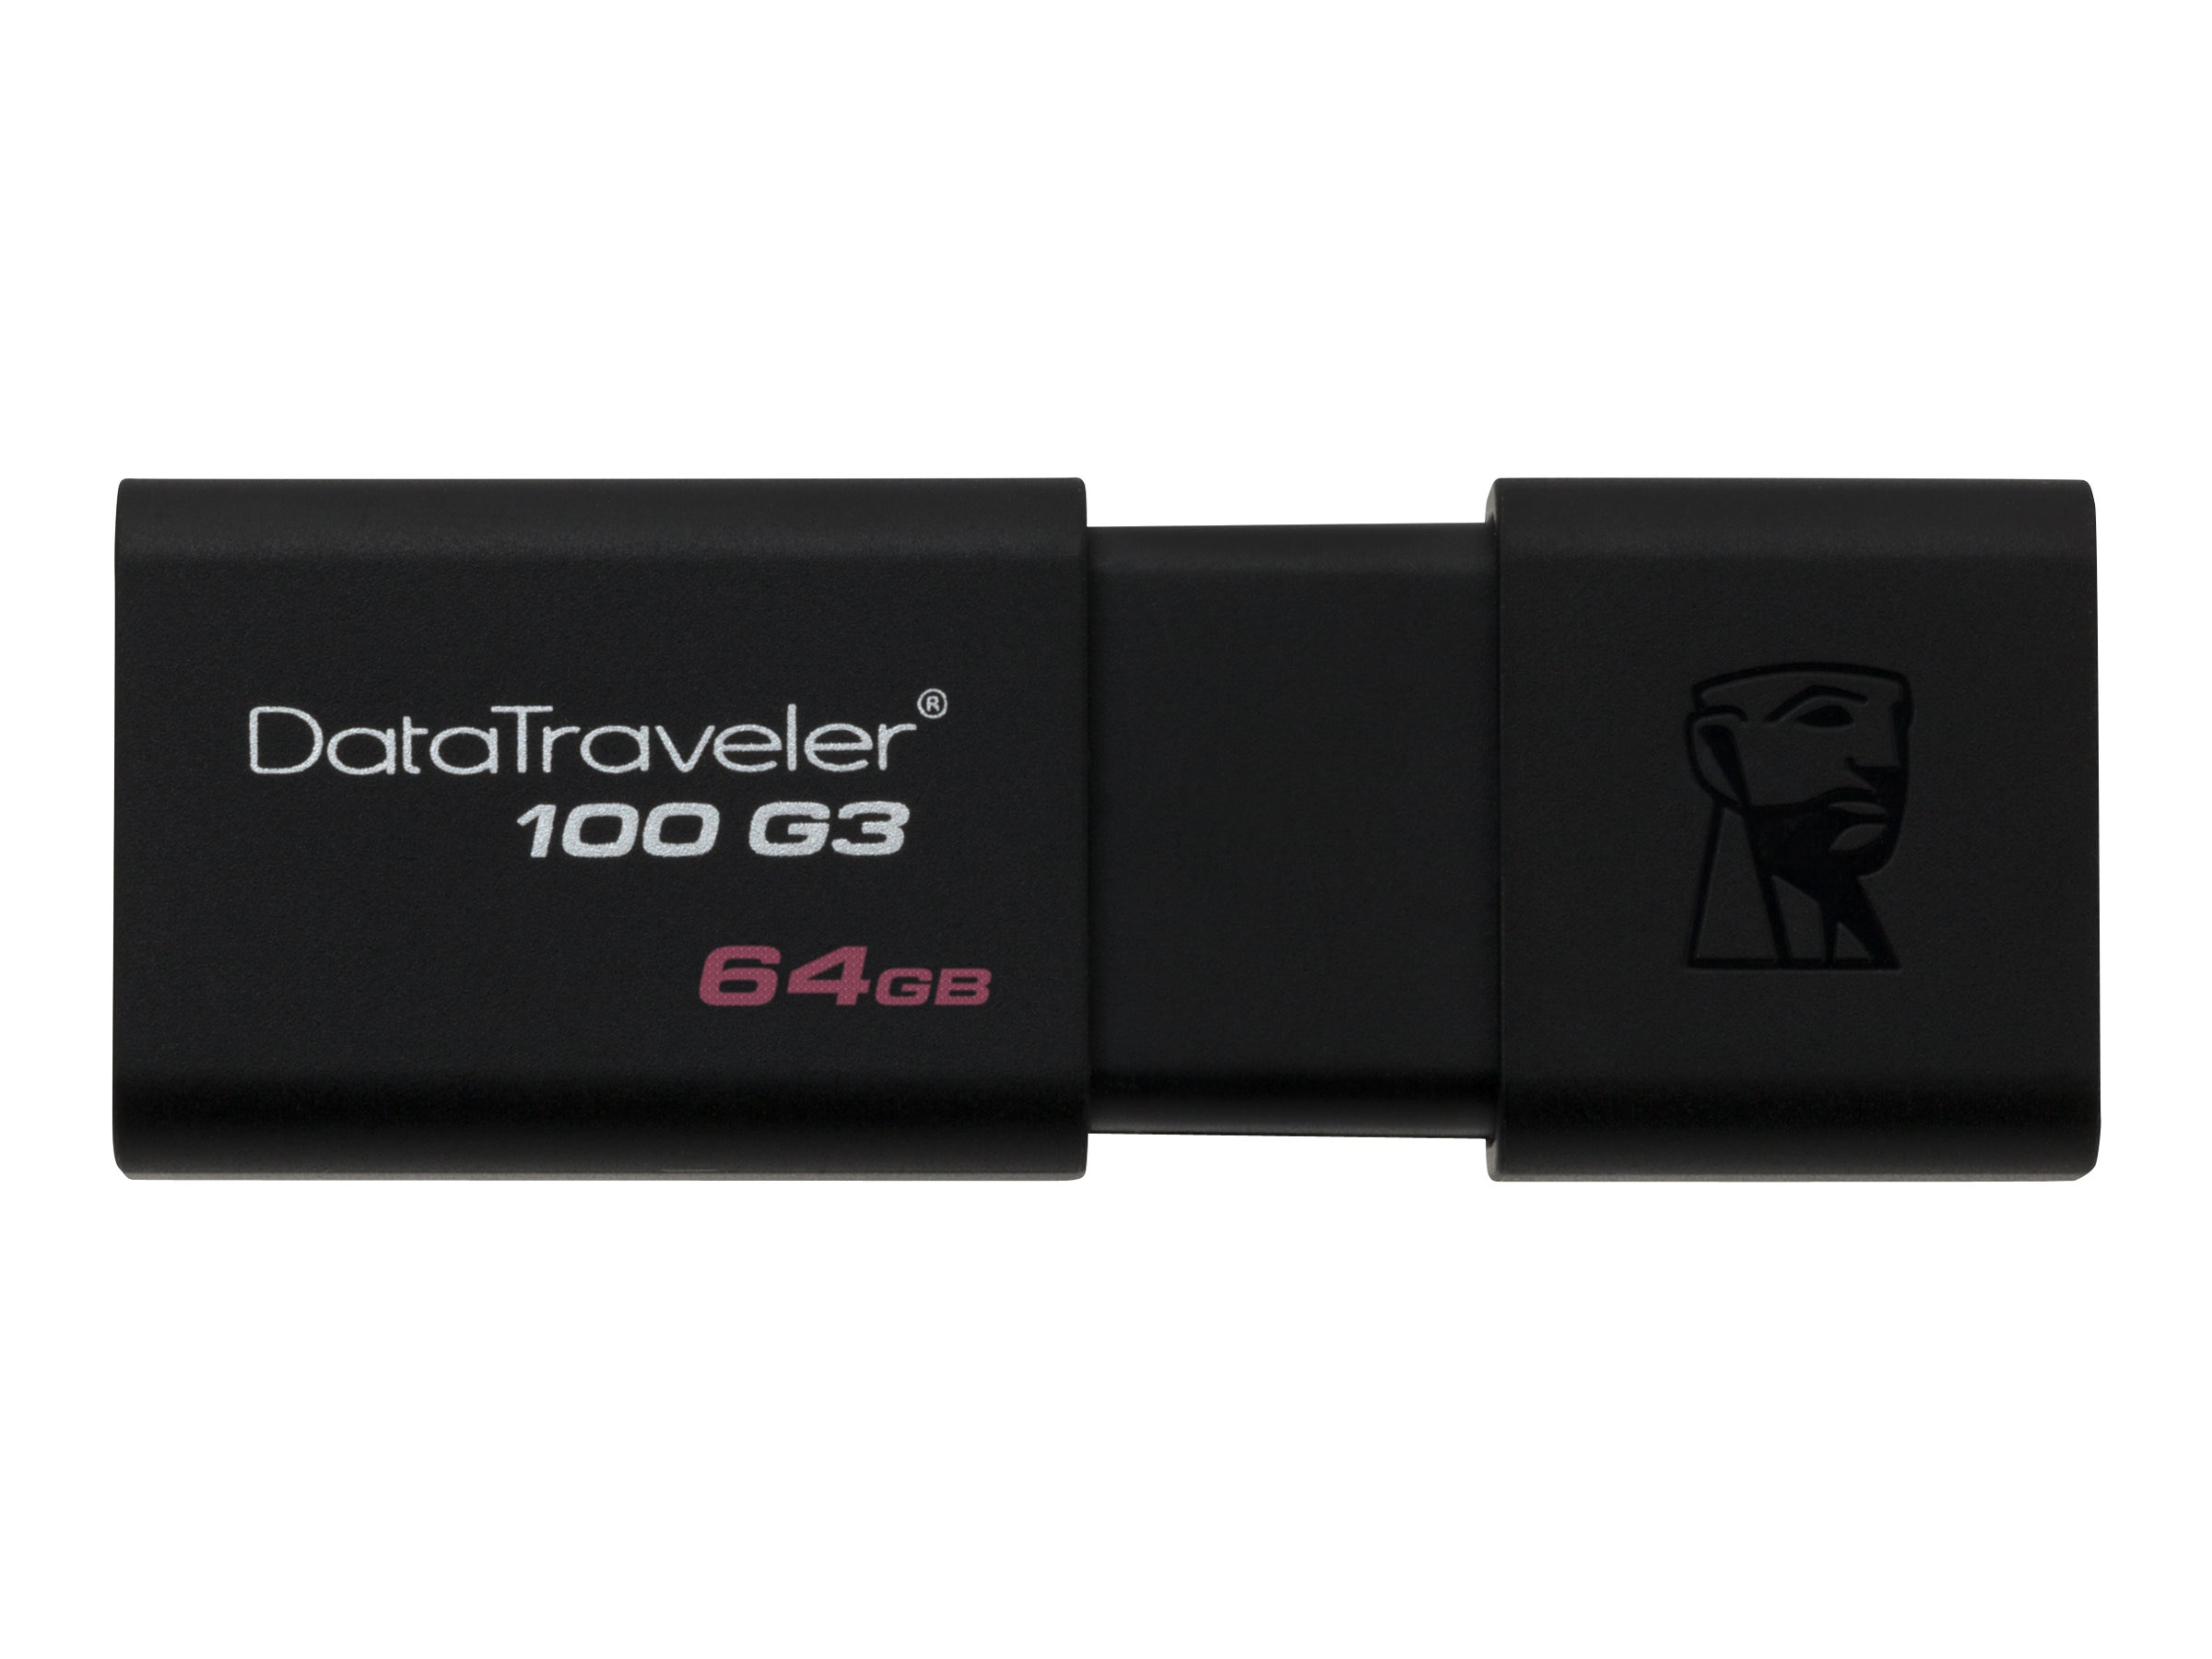 Kingston 64GB DataTraveler 100 G3 USB 3.0 Flash Drive, DT100G3/64GB